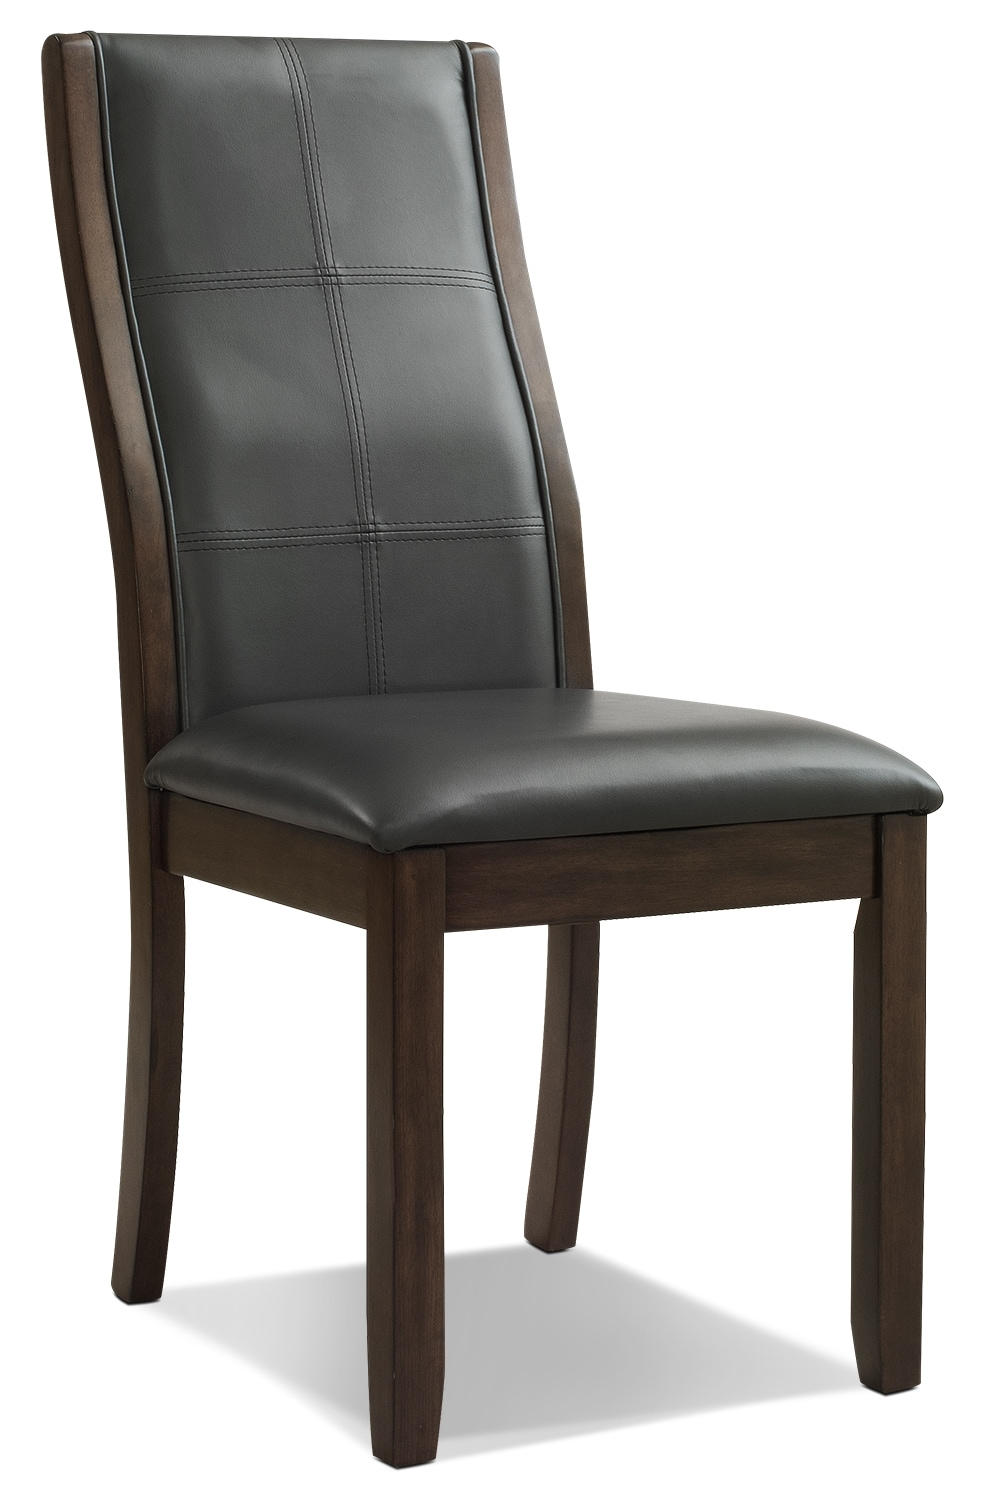 Tyler Dining Chair - Grey